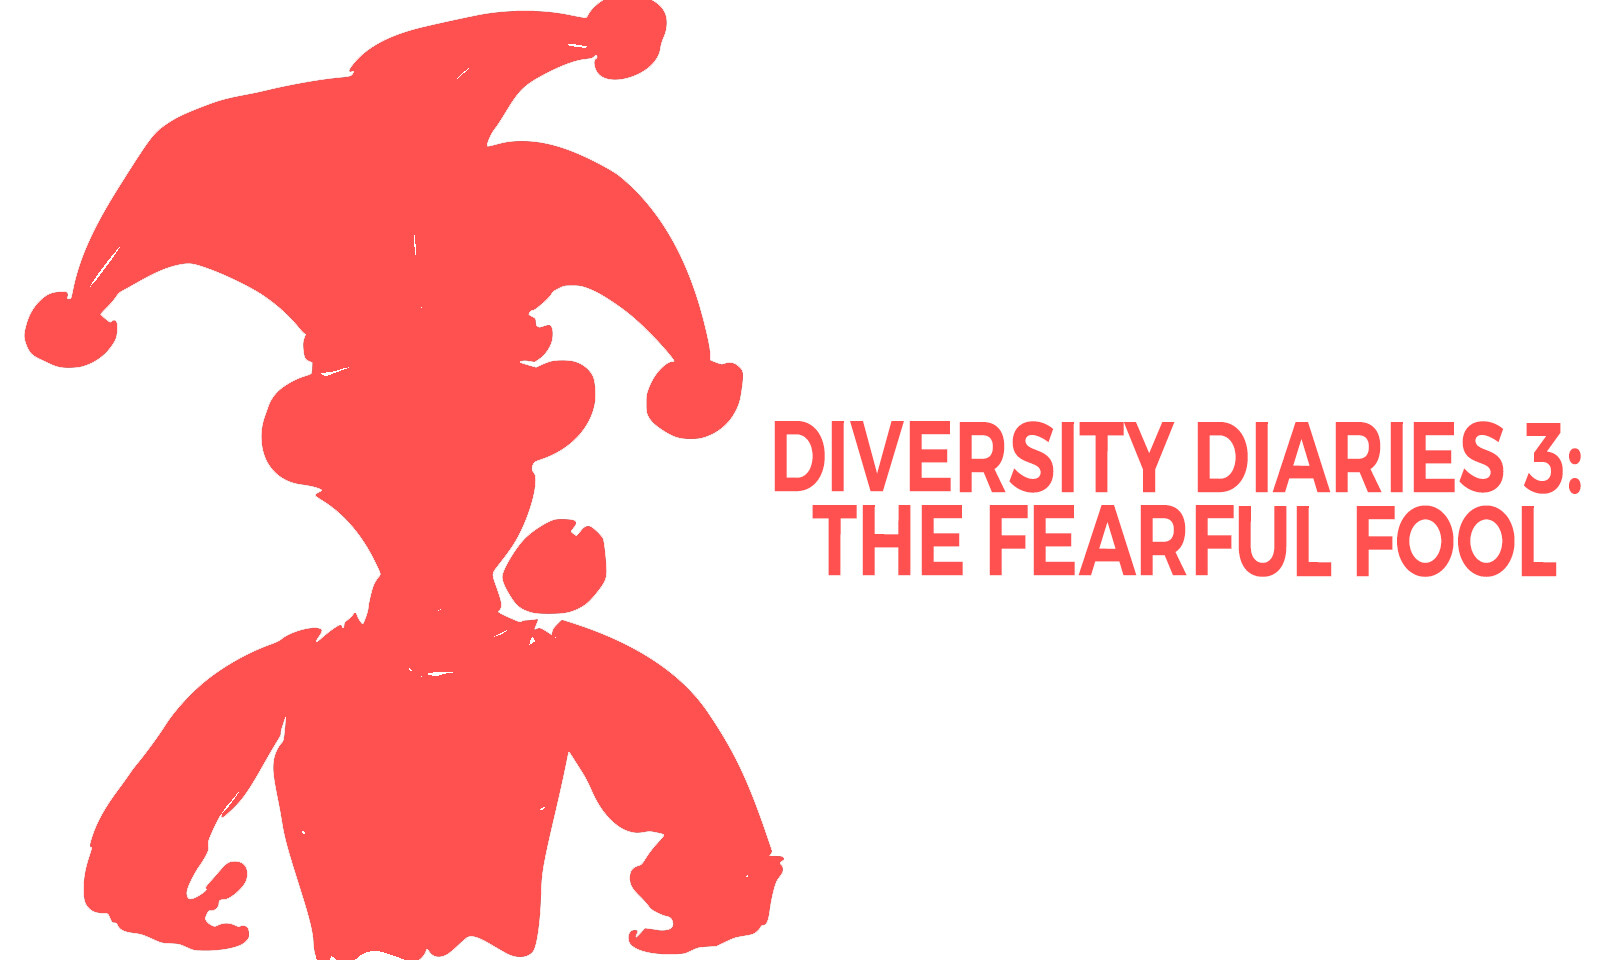 In this addition to our Diversity Diaries series we will be taking a look at fear and diving into its relationship with prejudice.